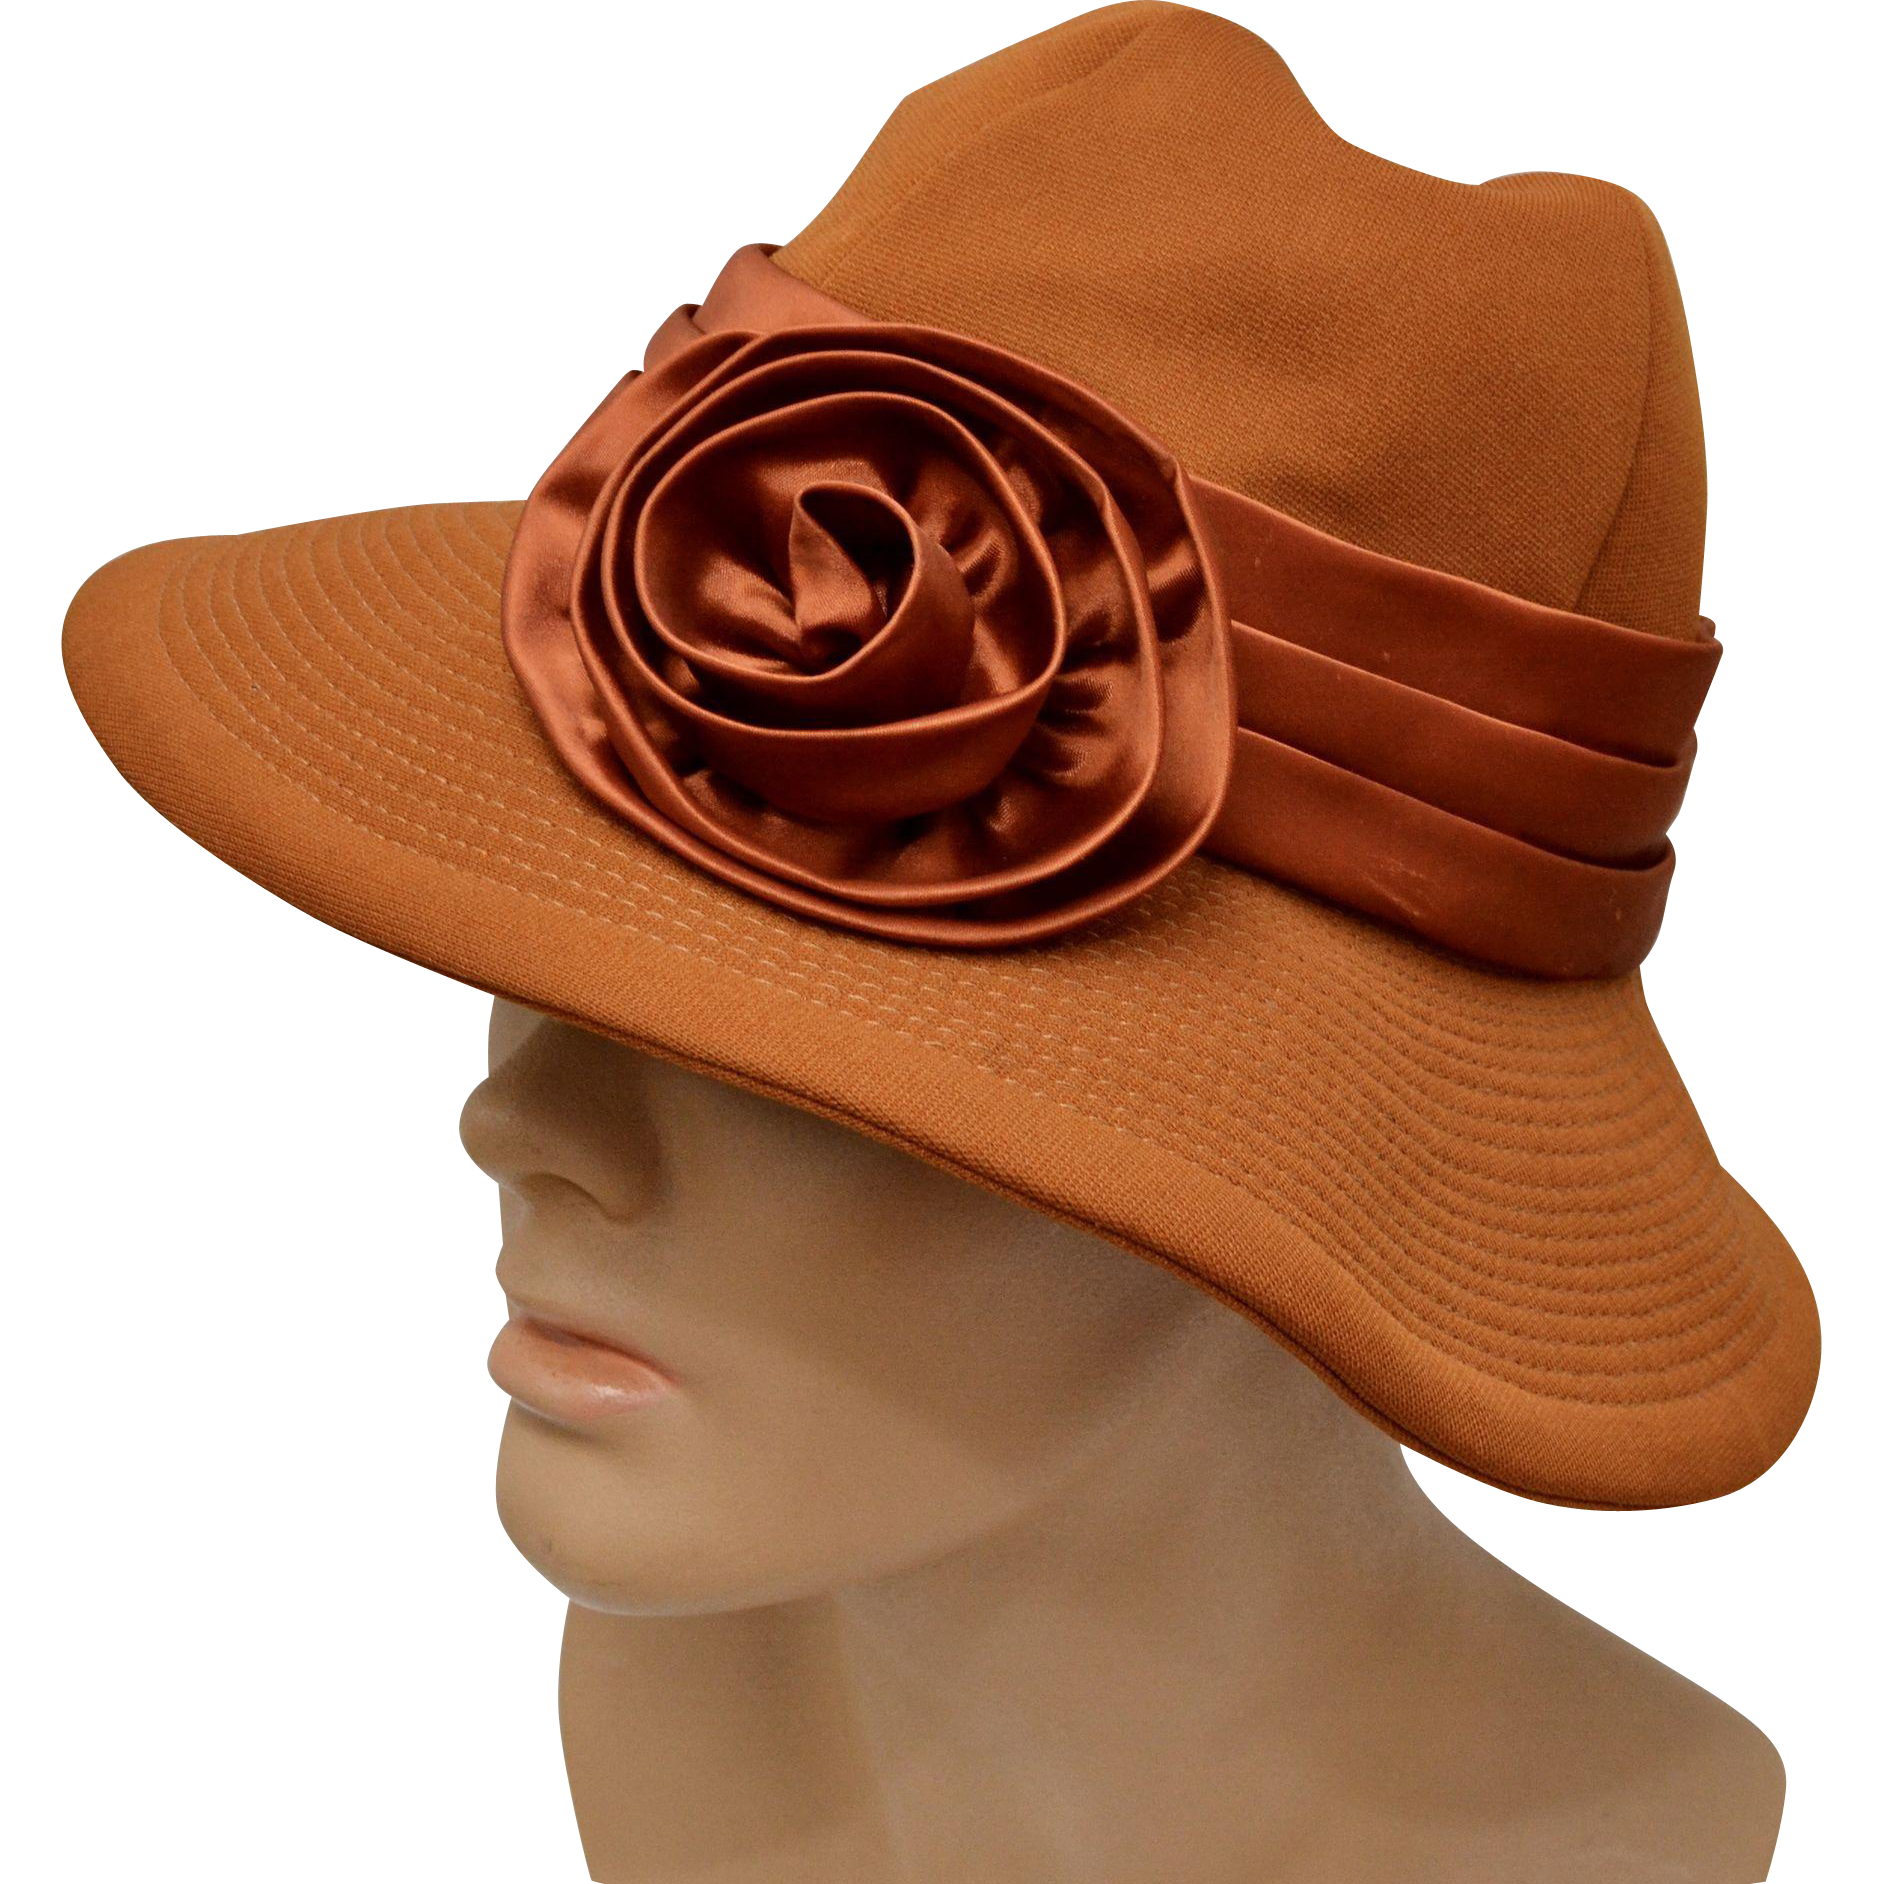 30d1dc34415 Circa 1960s Charo Original Burnt Sienna Deep Orange w/ Satin Bow Hat Very  good to excellent condition Inner hat circumference is 7 Brim is 3 1/4 Sits